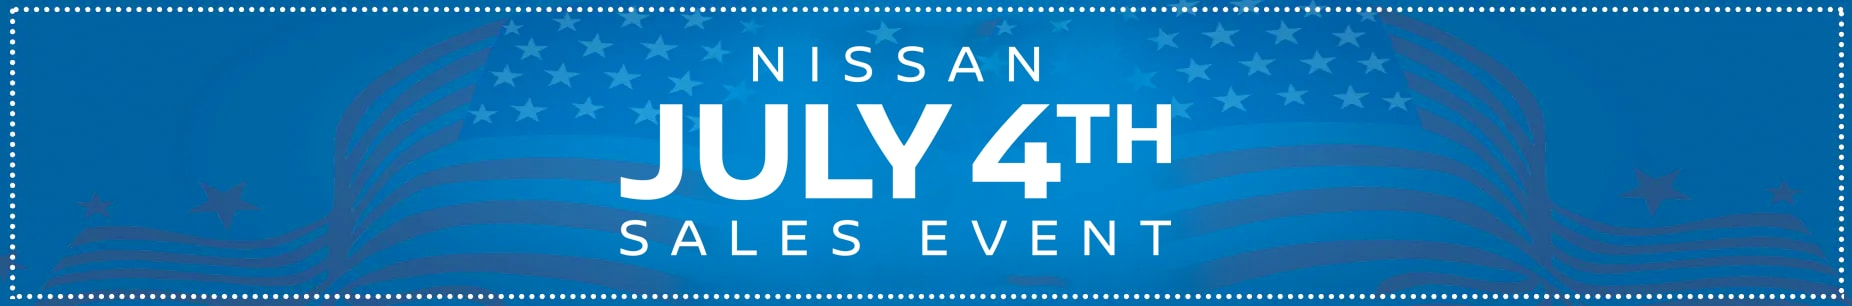 Nissan July 4th Sales Event 2019